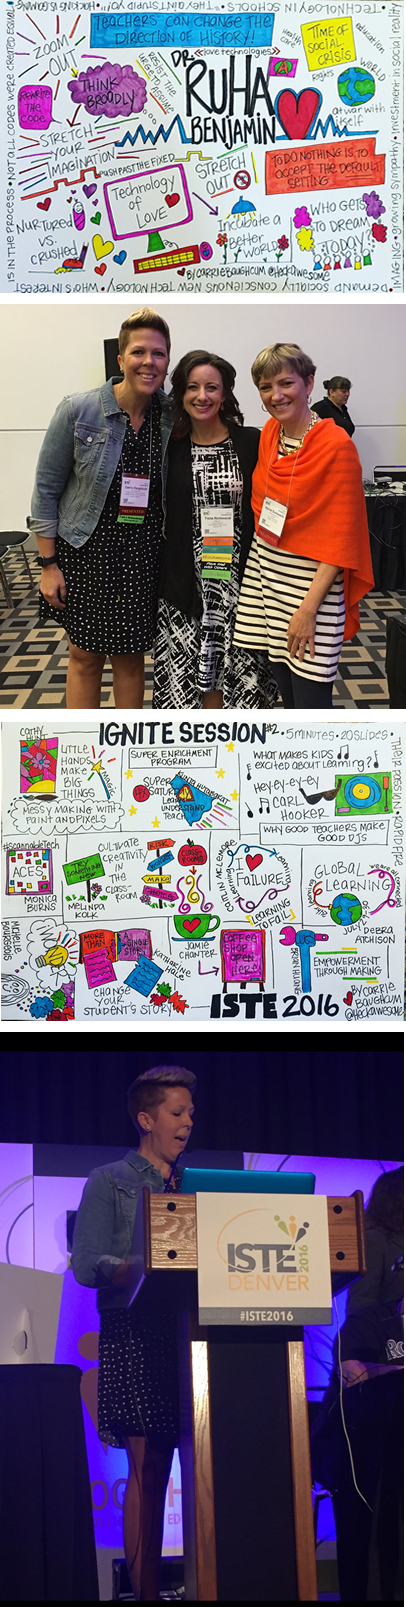 ISTE 2016 Moment